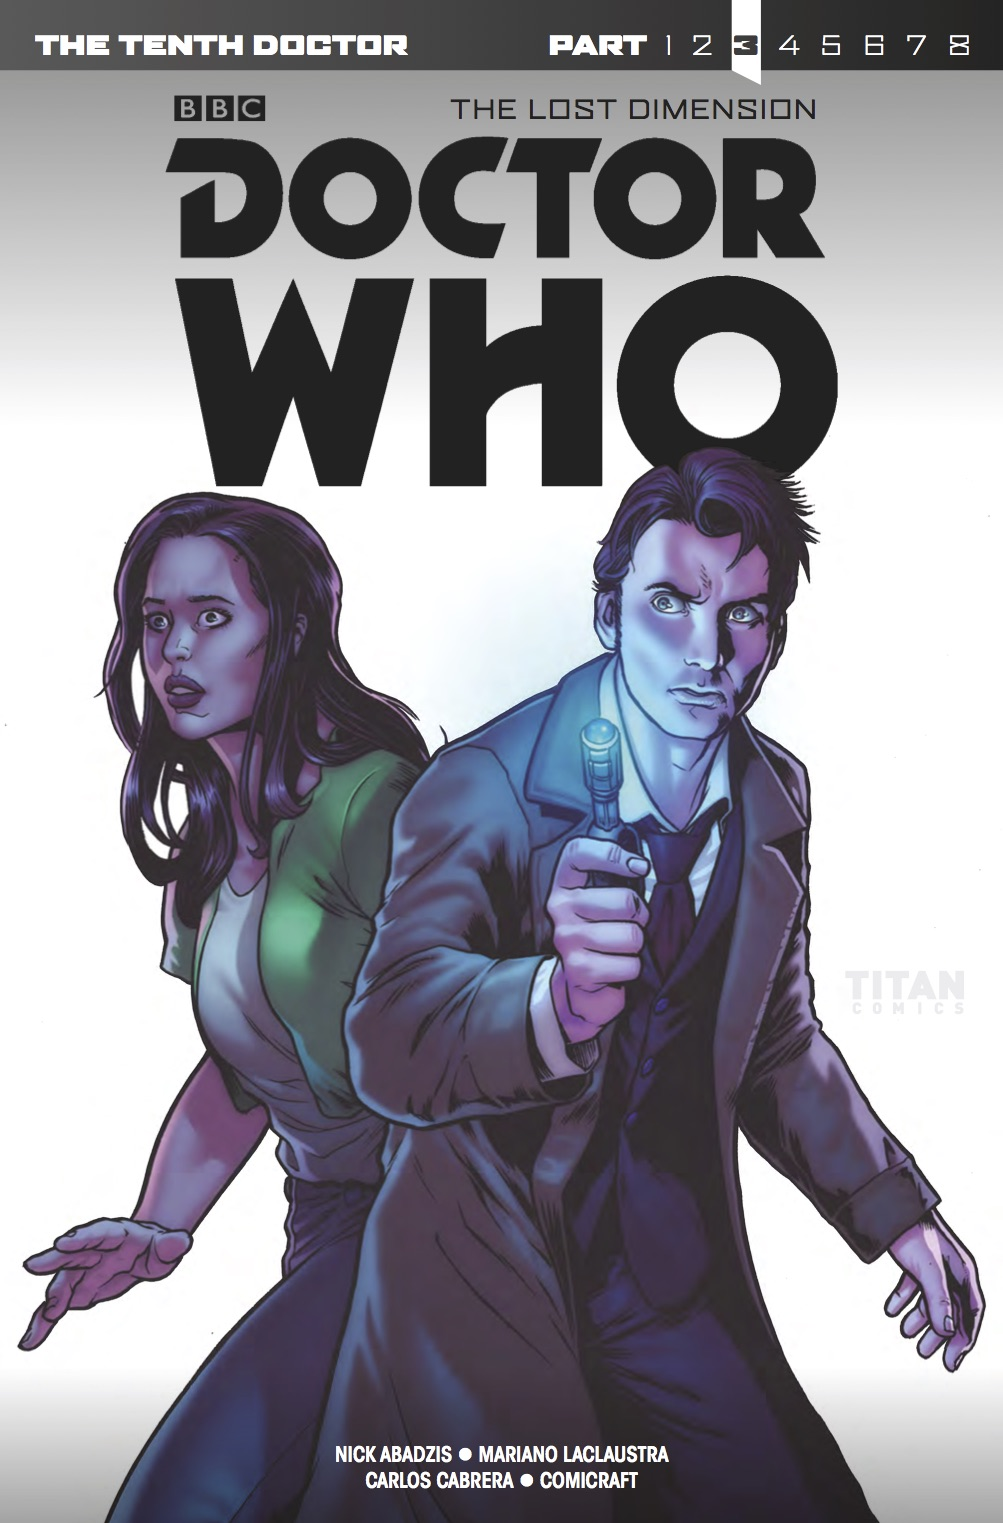 The Lost Dimension #3 - Tenth Doctor Special Cover A (Credit: Titan)